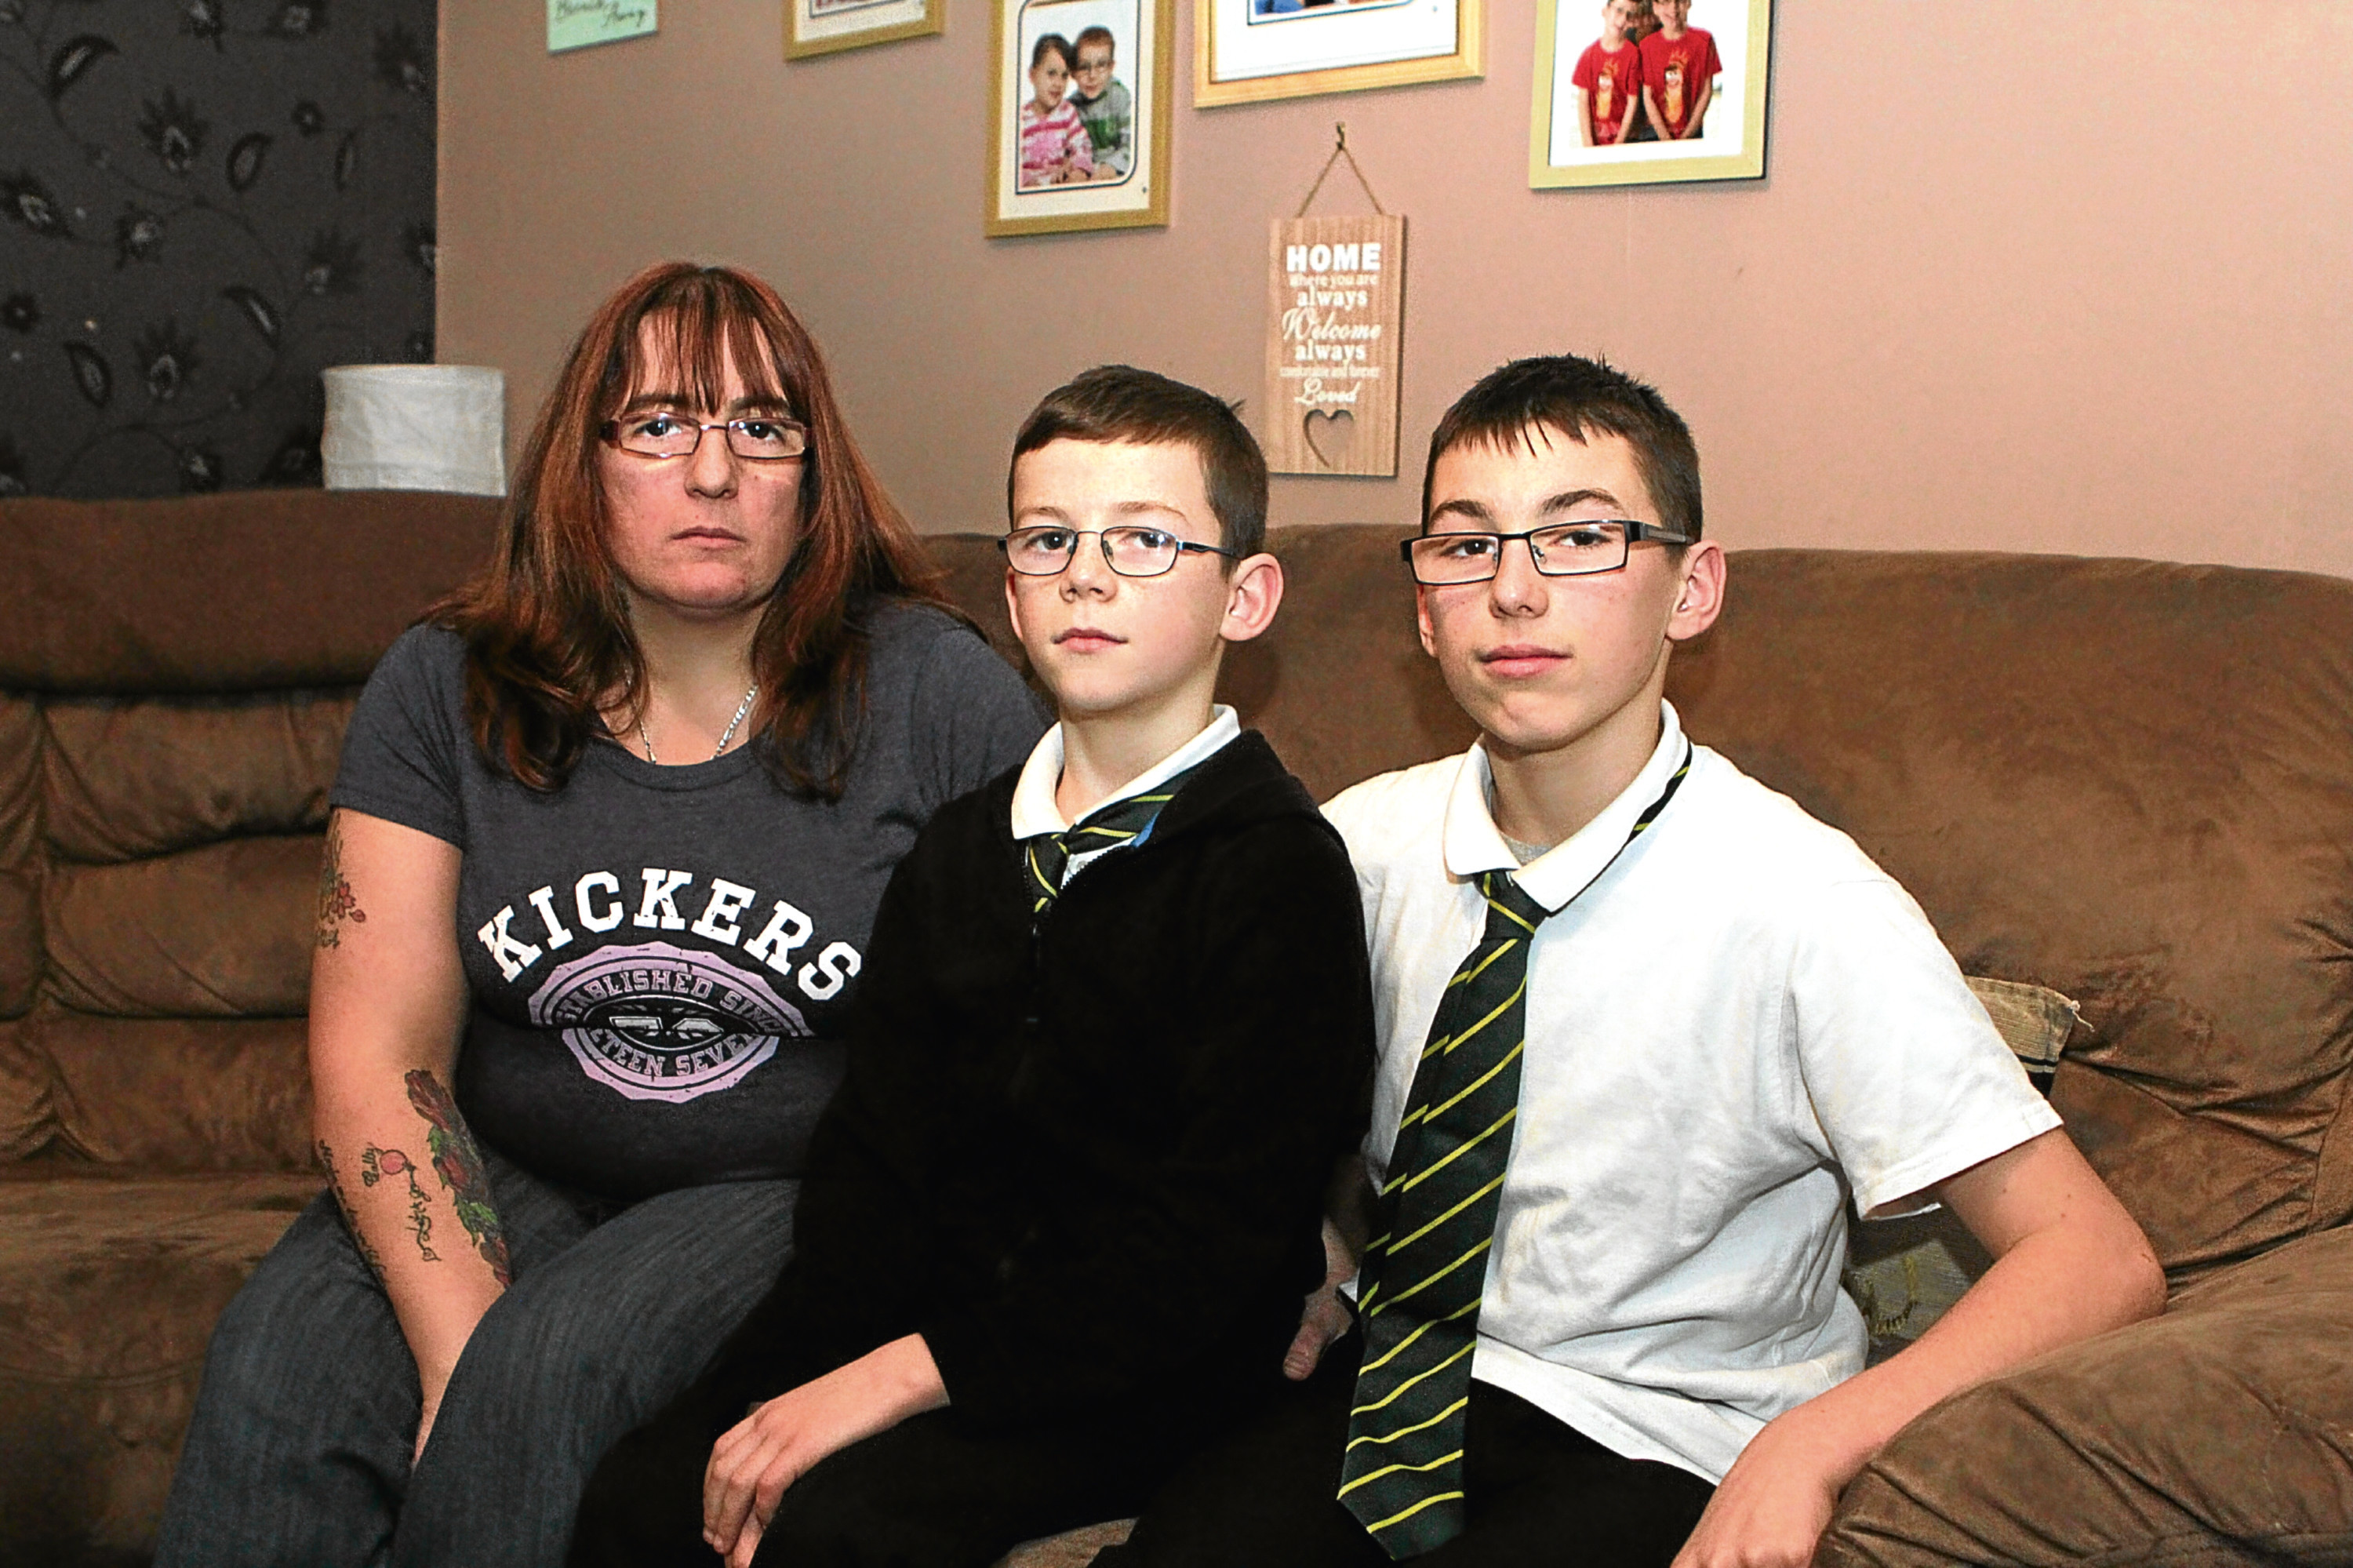 Kerry with sons Callan and Keiran. The pair were followed by a group of youths and Keiran was assaulted.